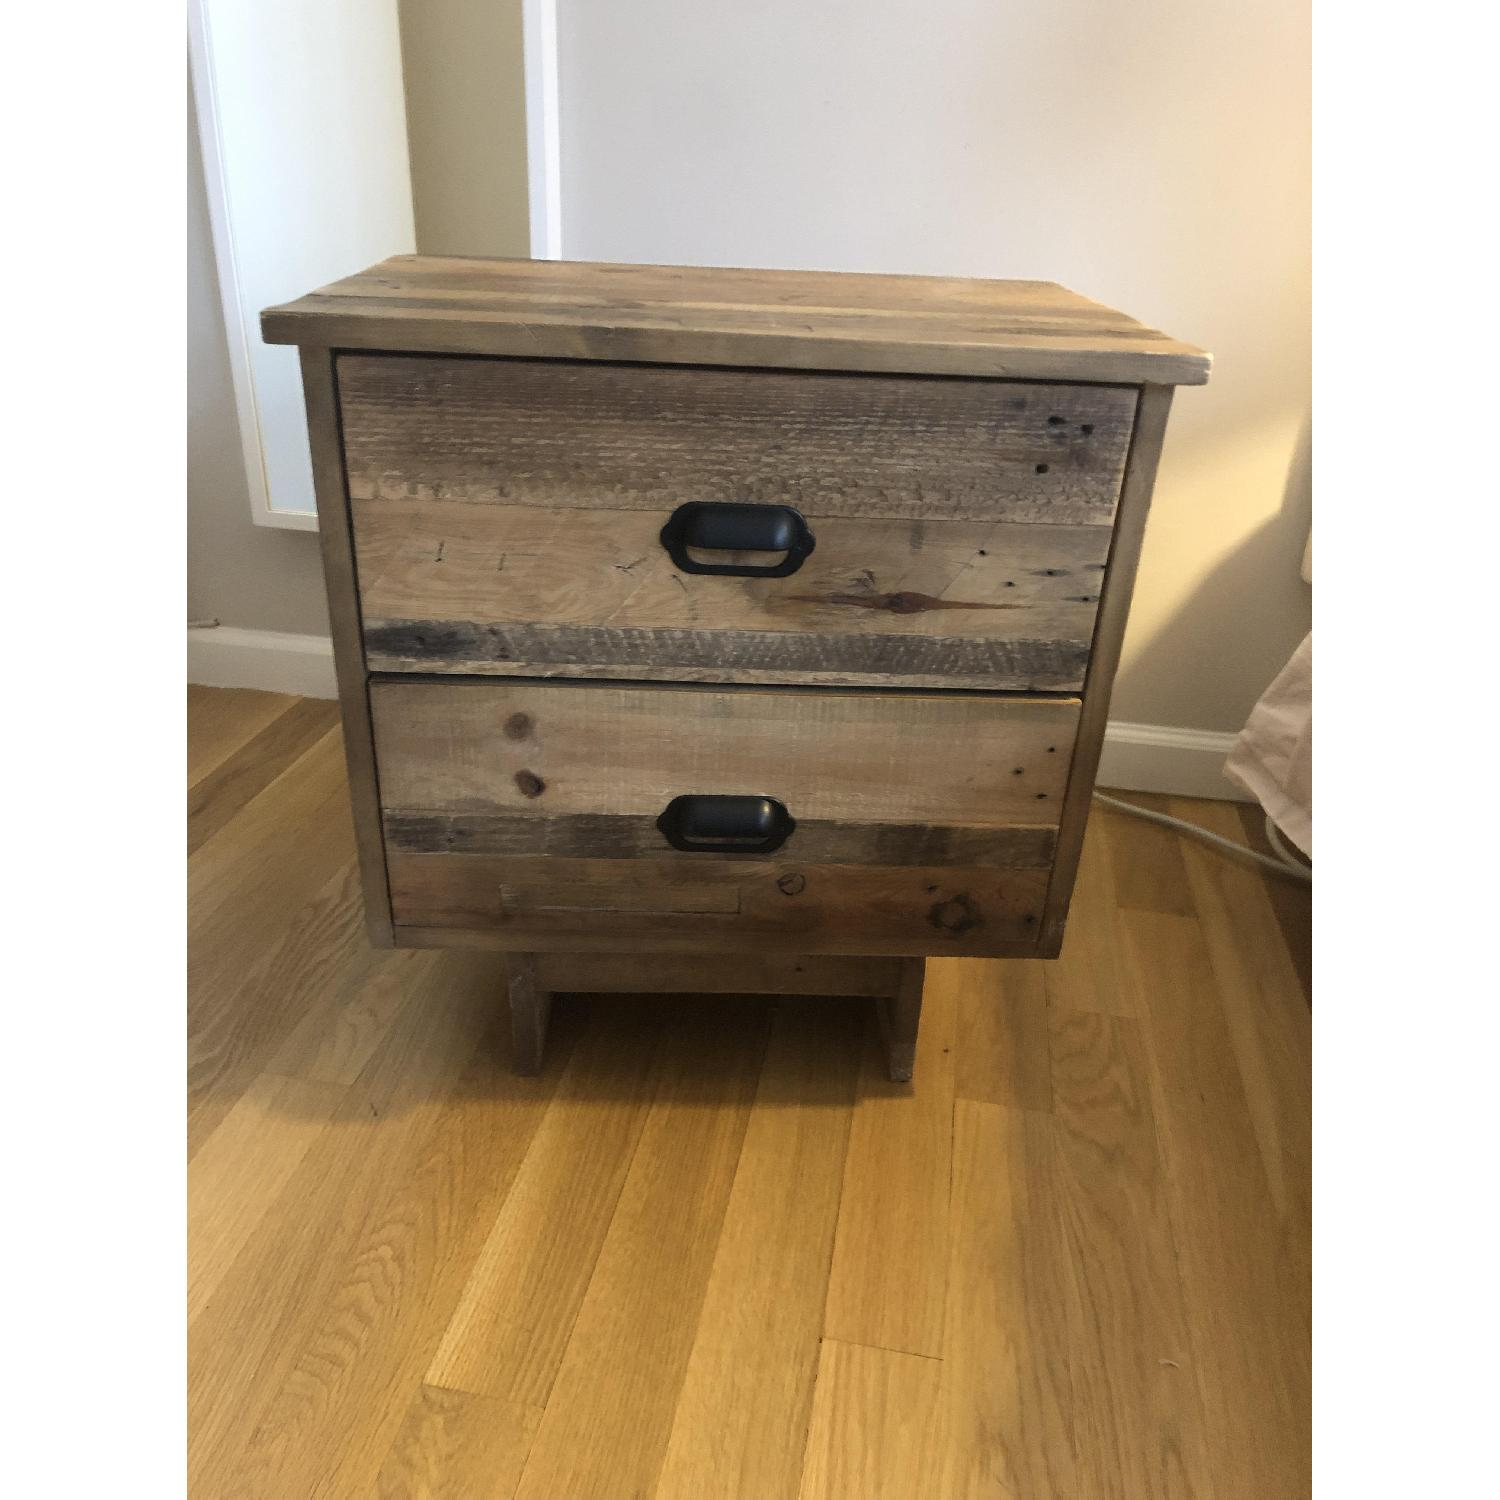 West Elm Emmerson Reclaimed Wood 2-Drawer Nightstand - image-6